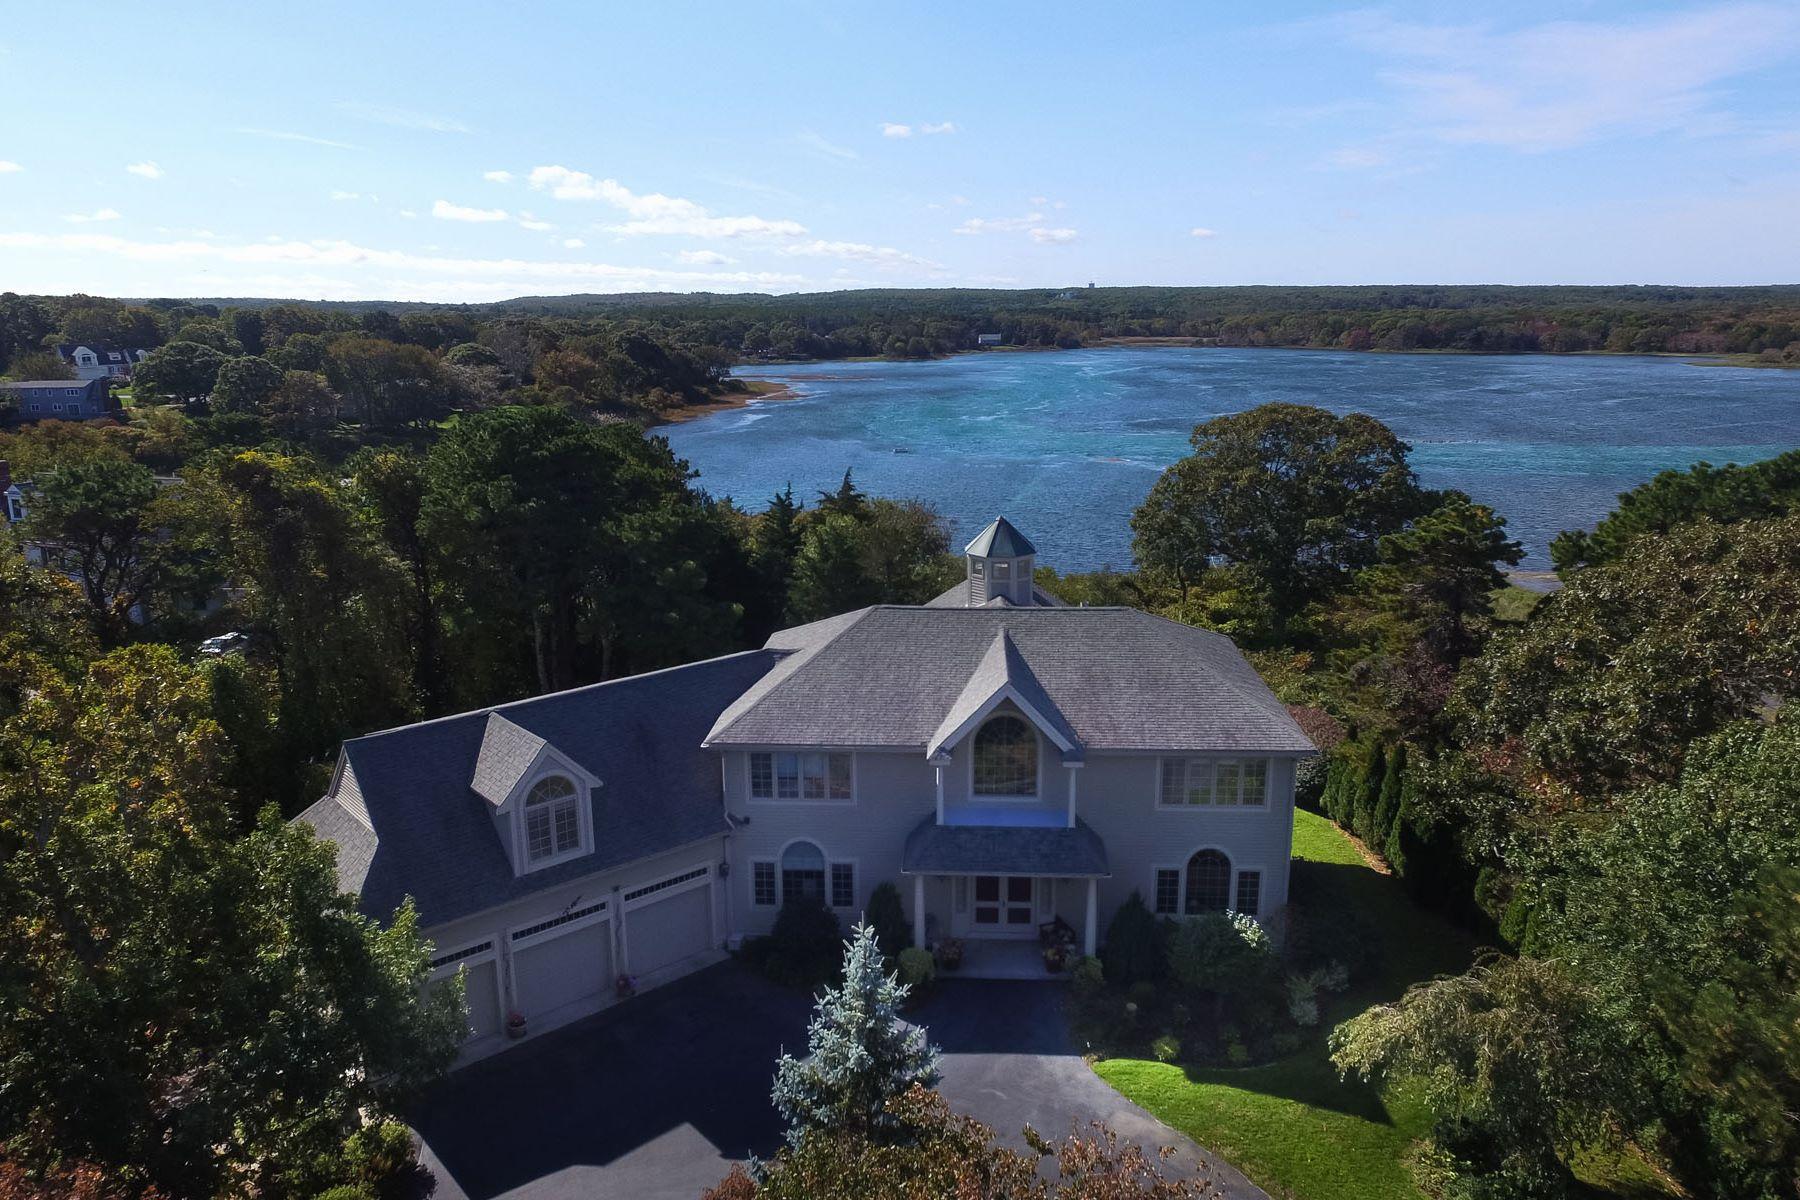 Single Family Home for Sale at PALATIAL HOME OVERLOOKING SCORTON CREEK 34 Goose Point Lane East Sandwich, Massachusetts, 02537 United States